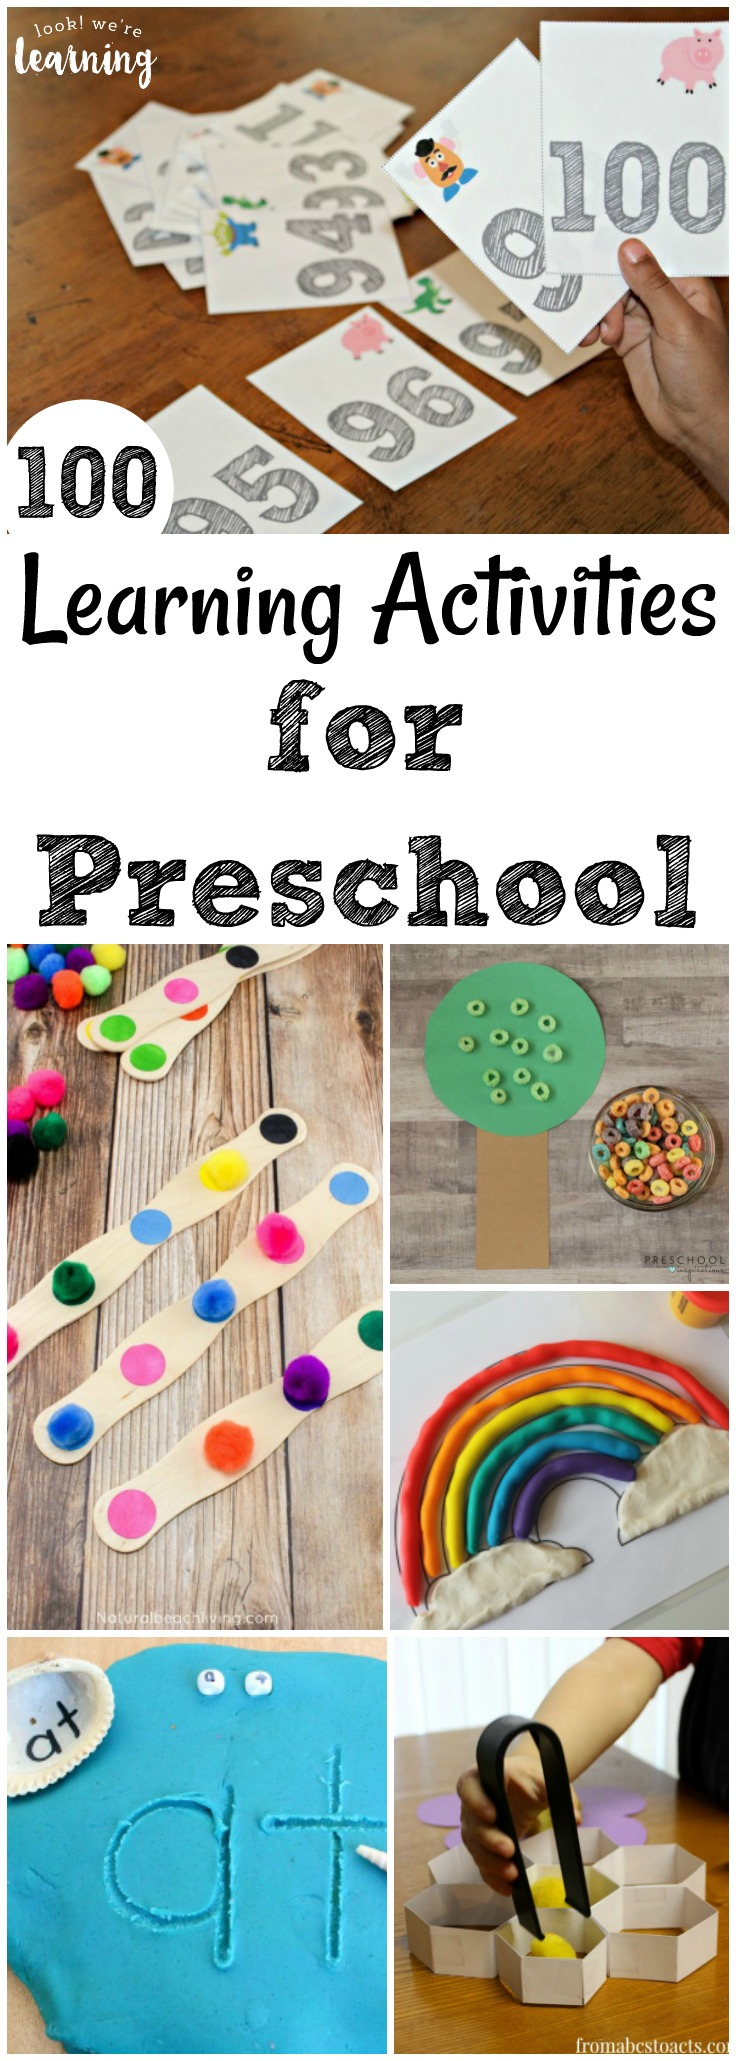 Share some of these fun and hands-on learning activities for preschoolers with your little ones!